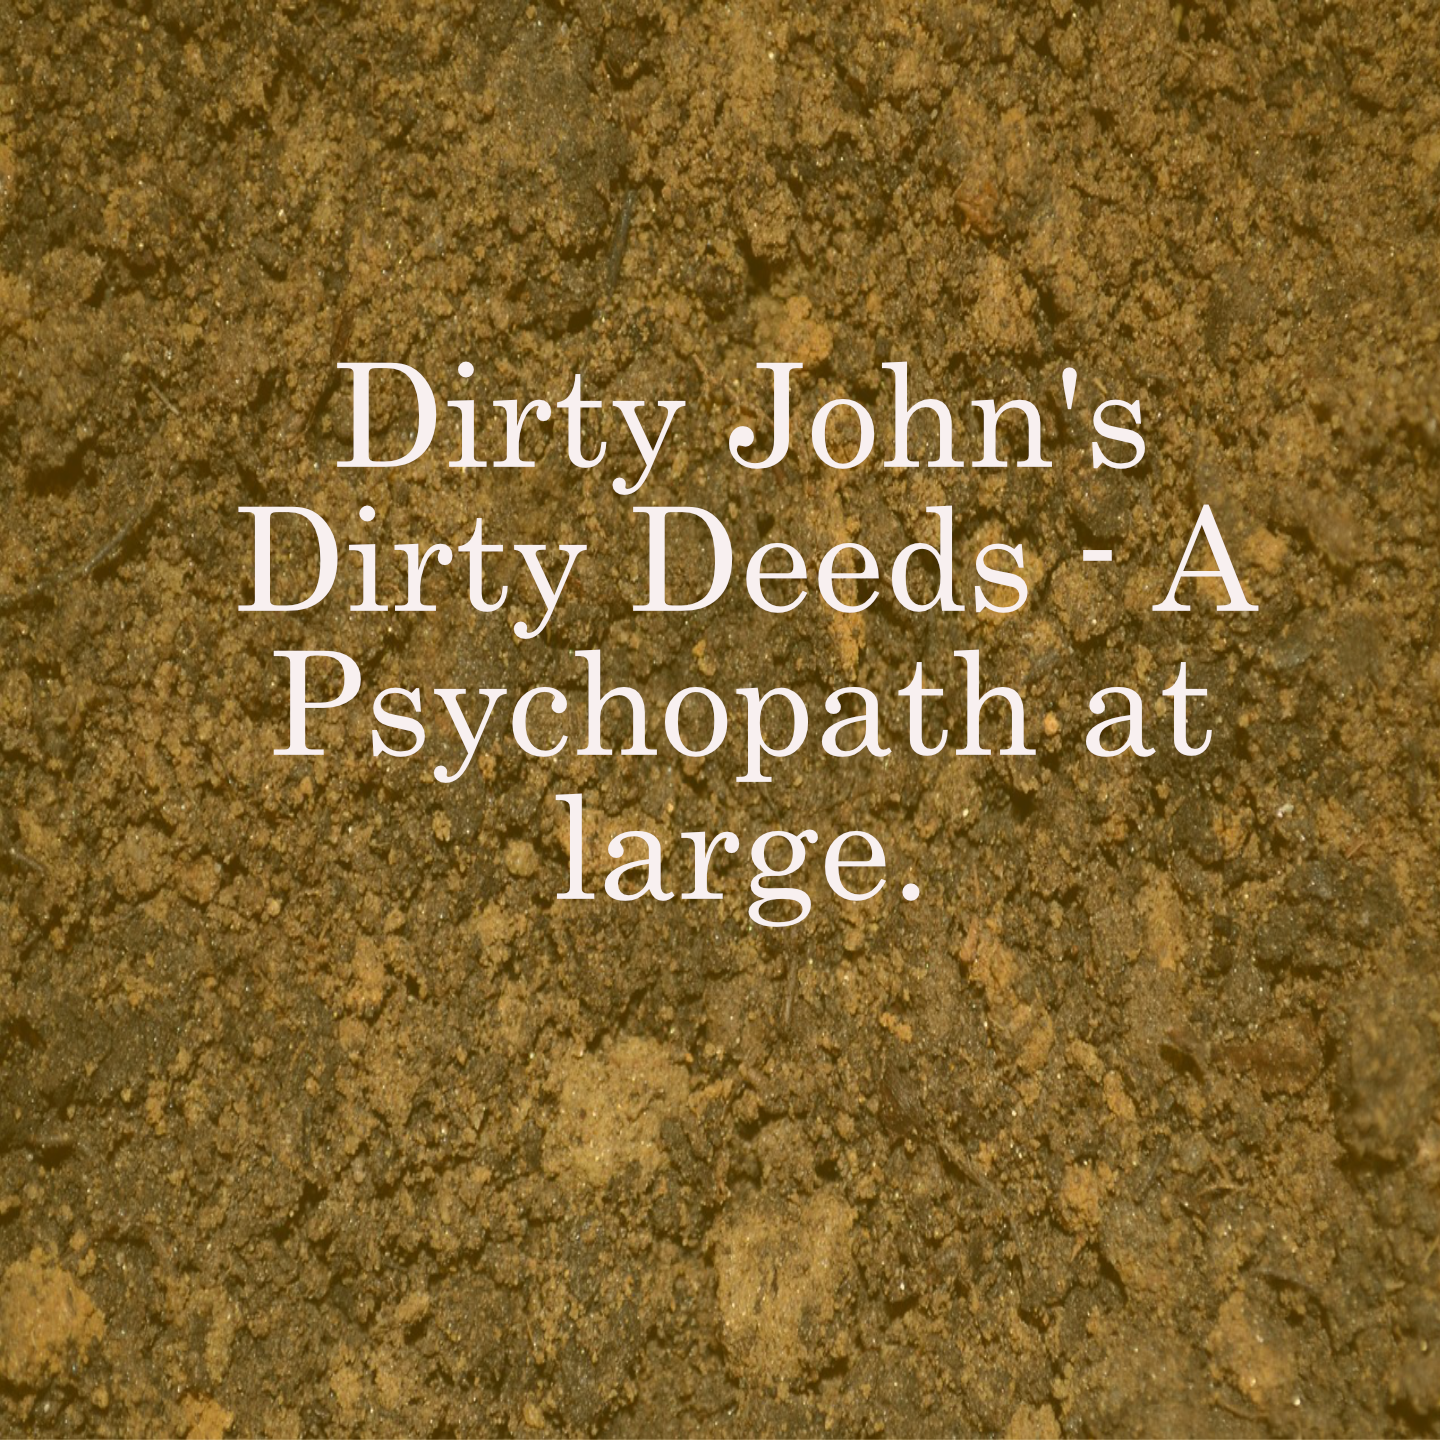 Dirty John's Dirty Deeds - A Psychopath at large